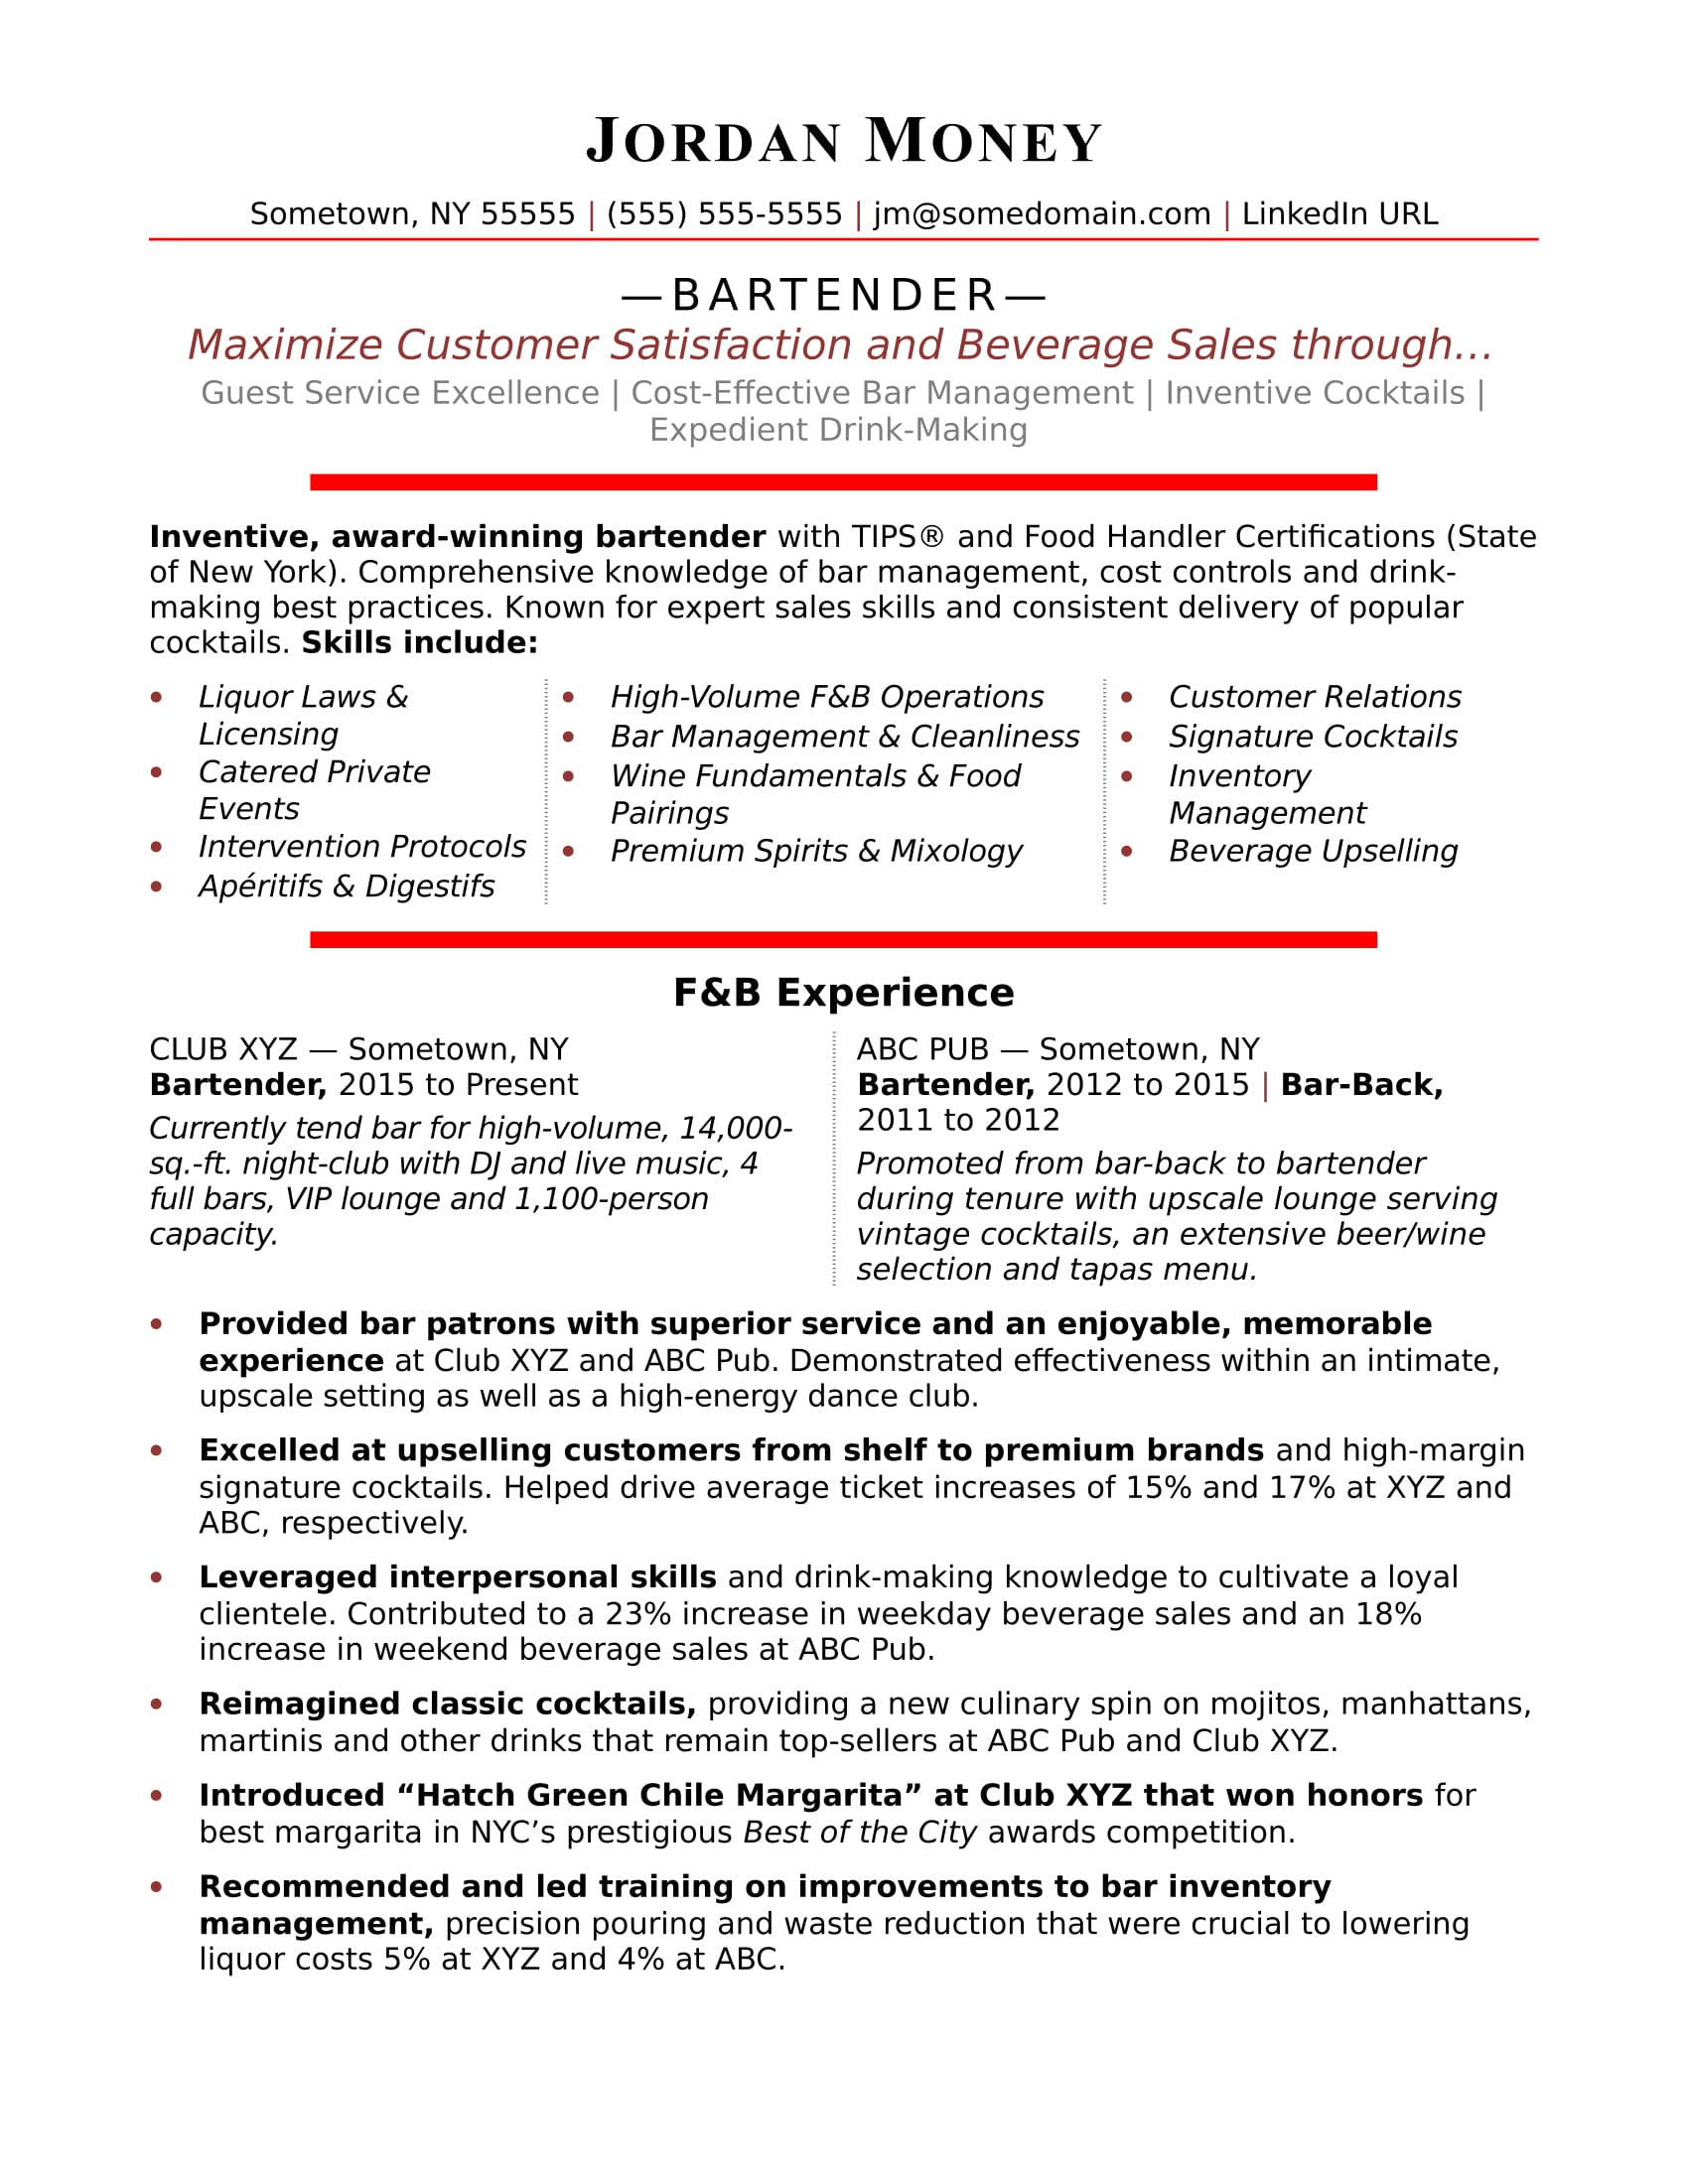 Bartender Resume Sample | Monster.com